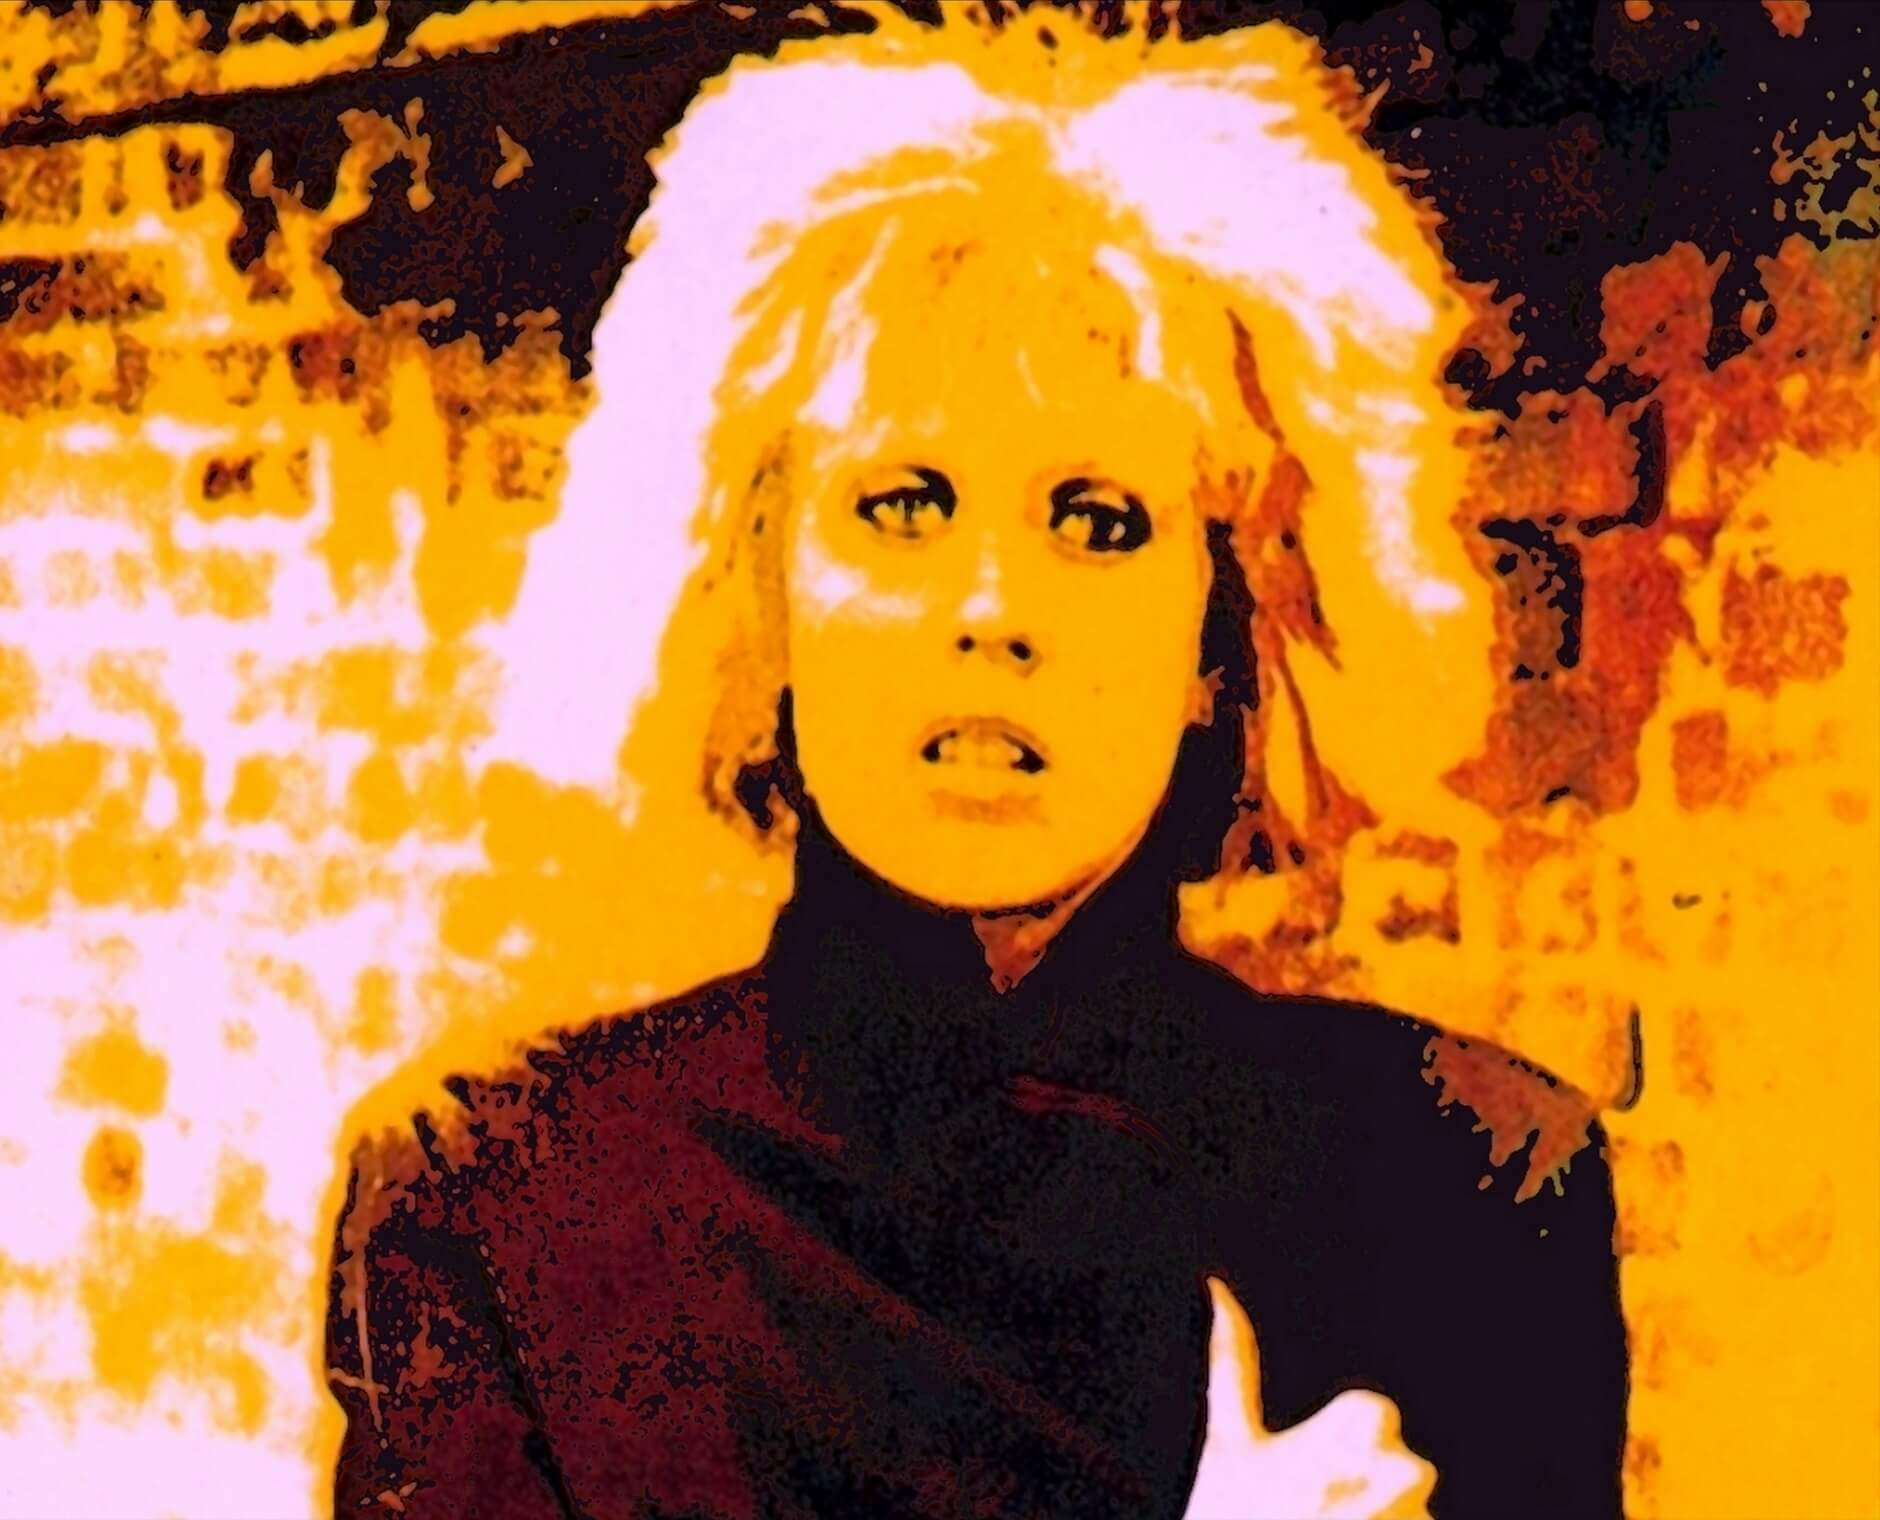 HAZEL O'CONNOR BREAKING GLASS 40 YEAR ON ~ HALLELUJAH!